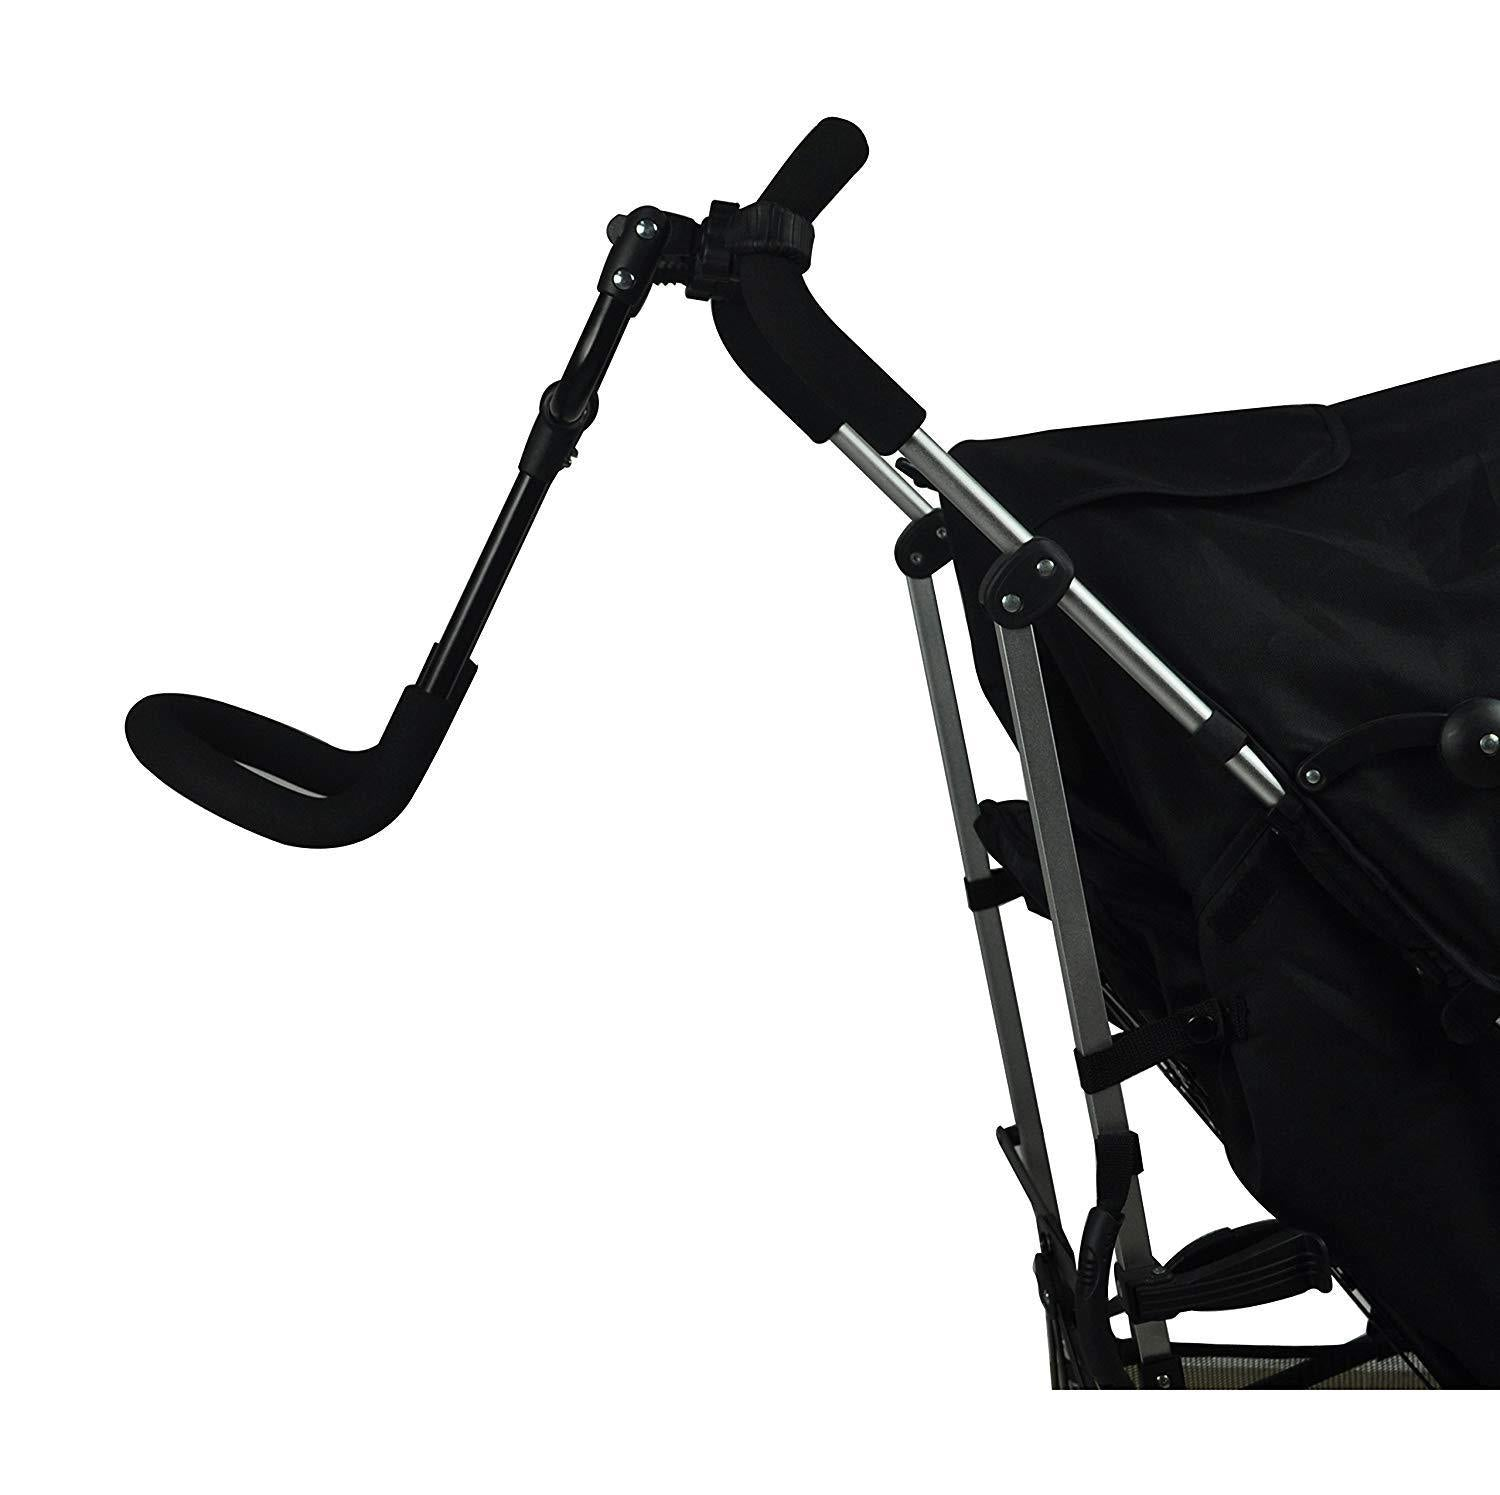 Englacha Cozy Stroll Stroller Handle Extension Bar, Black